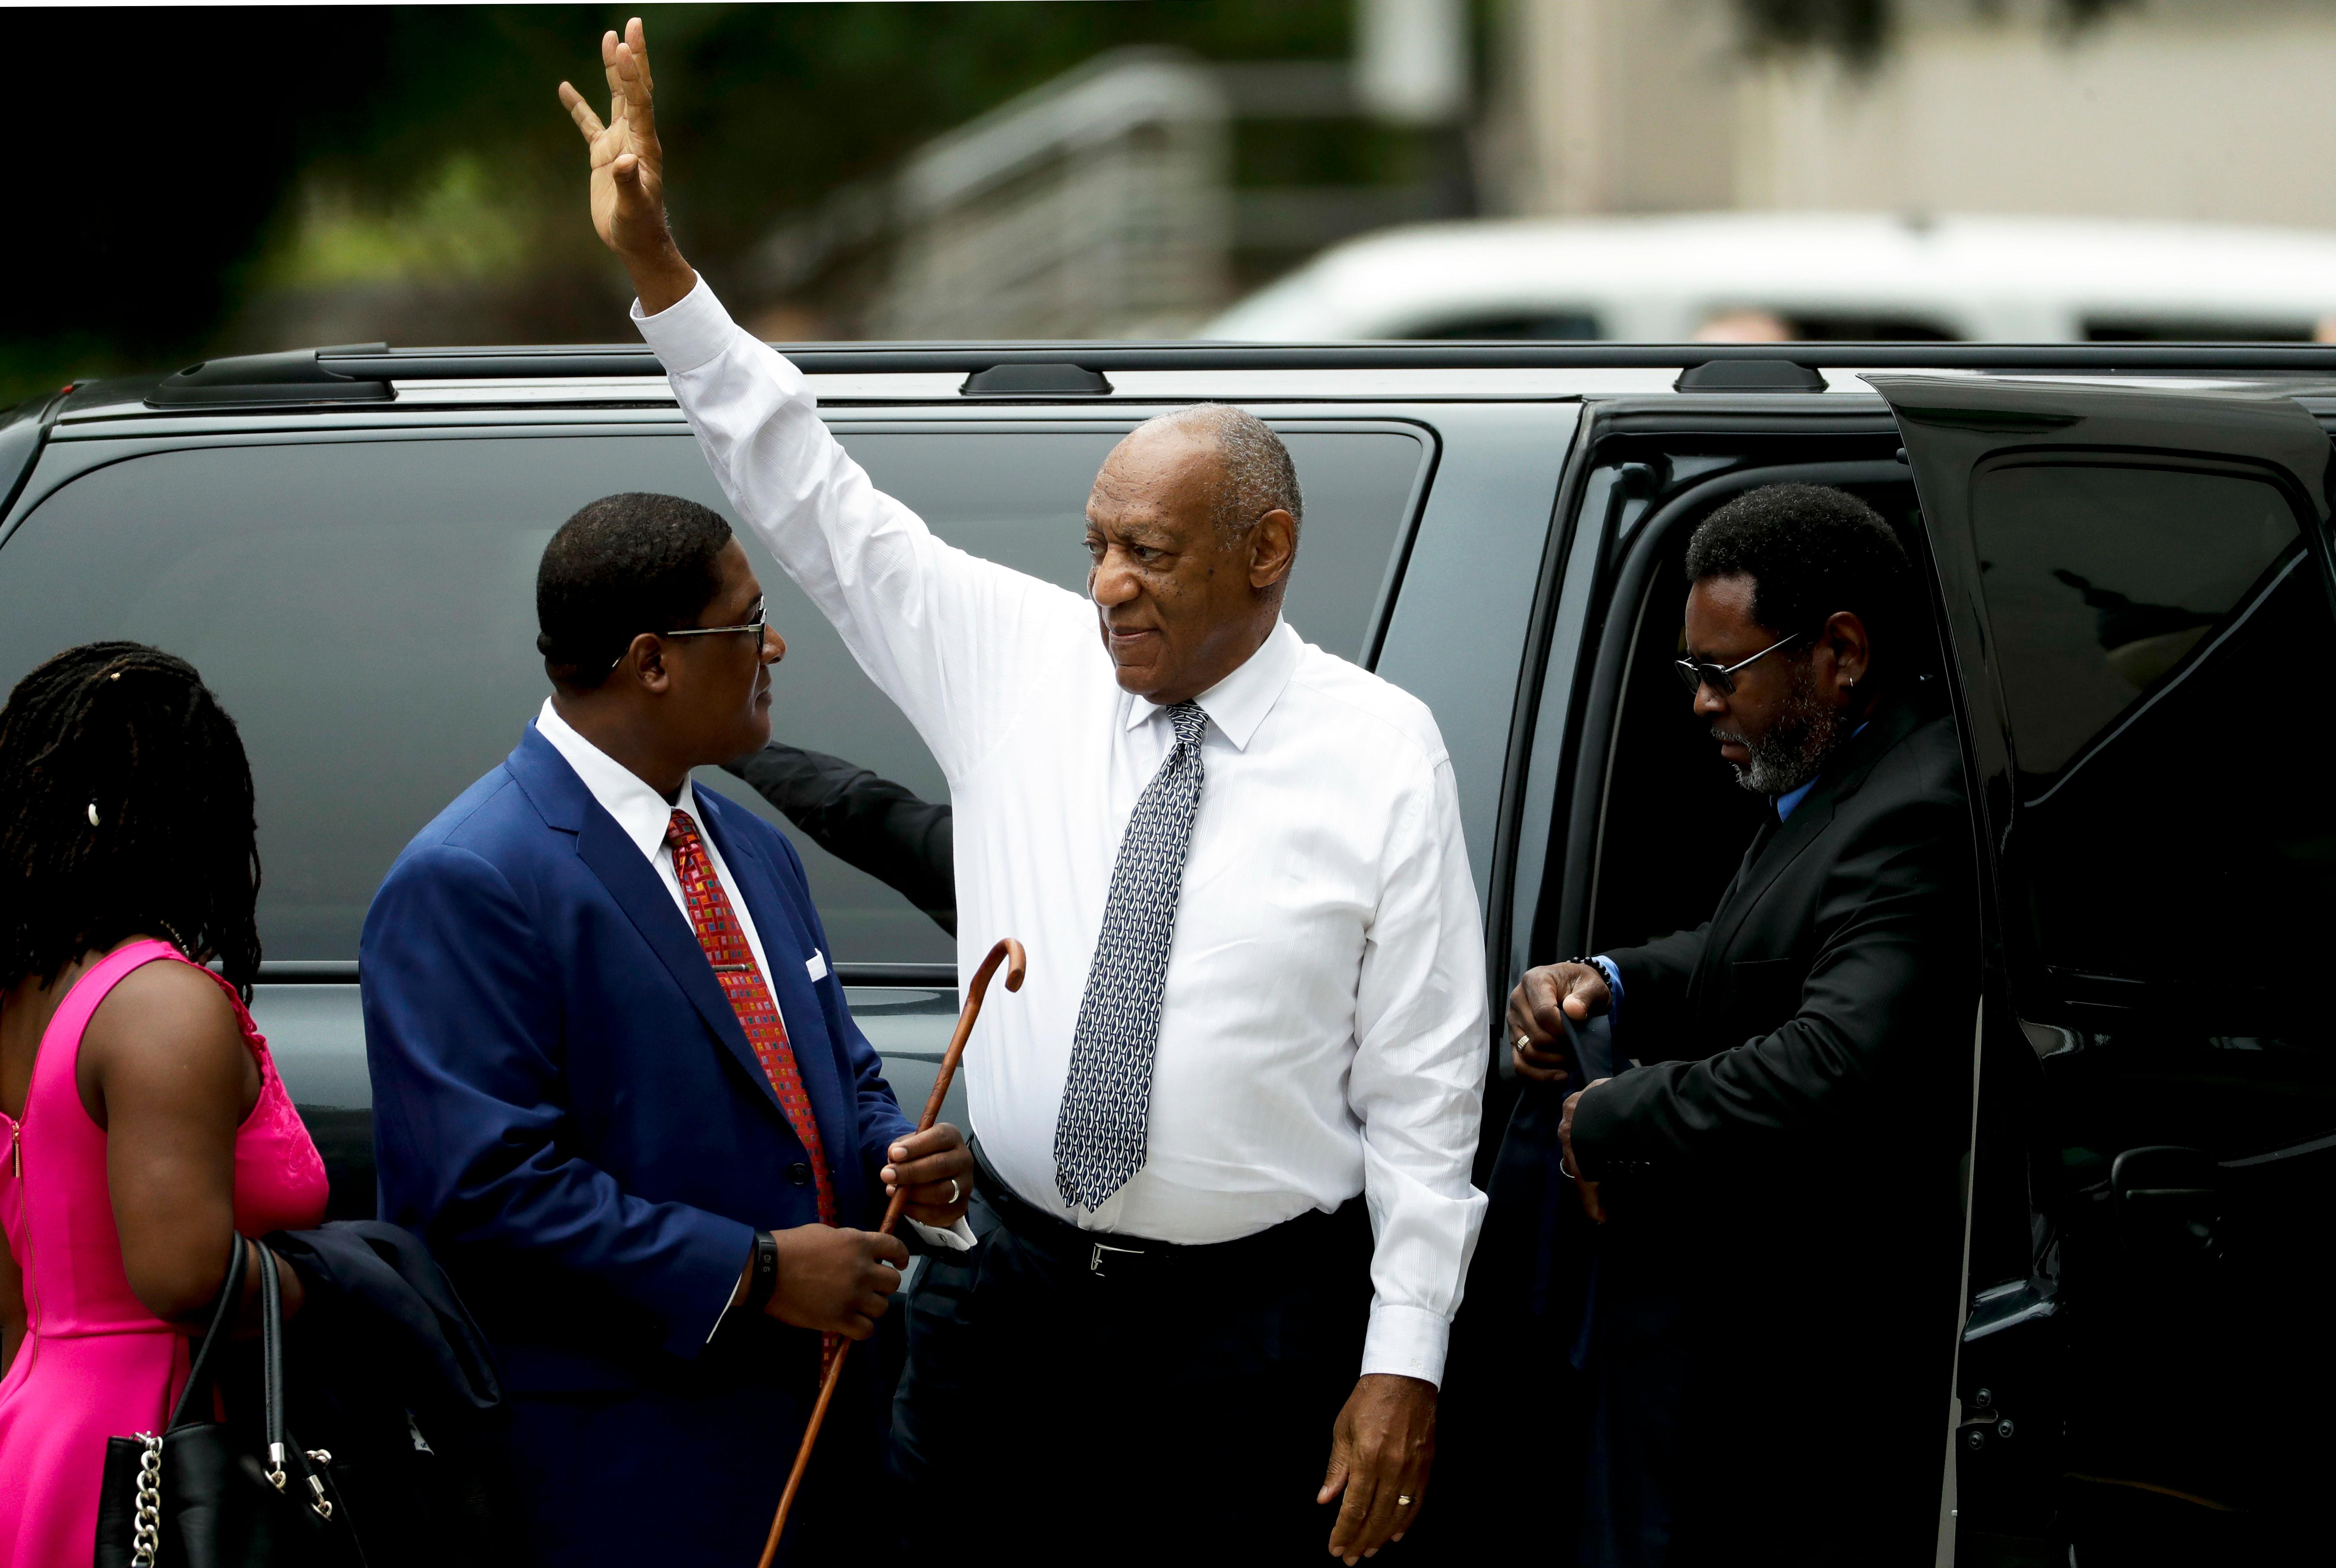 Bill Cosby waves as he arrives at the Montgomery County Courthouse during his sexual assault trial, Friday, June 16, 2017, in Norristown, Pa. (AP Photo/Matt Slocum)